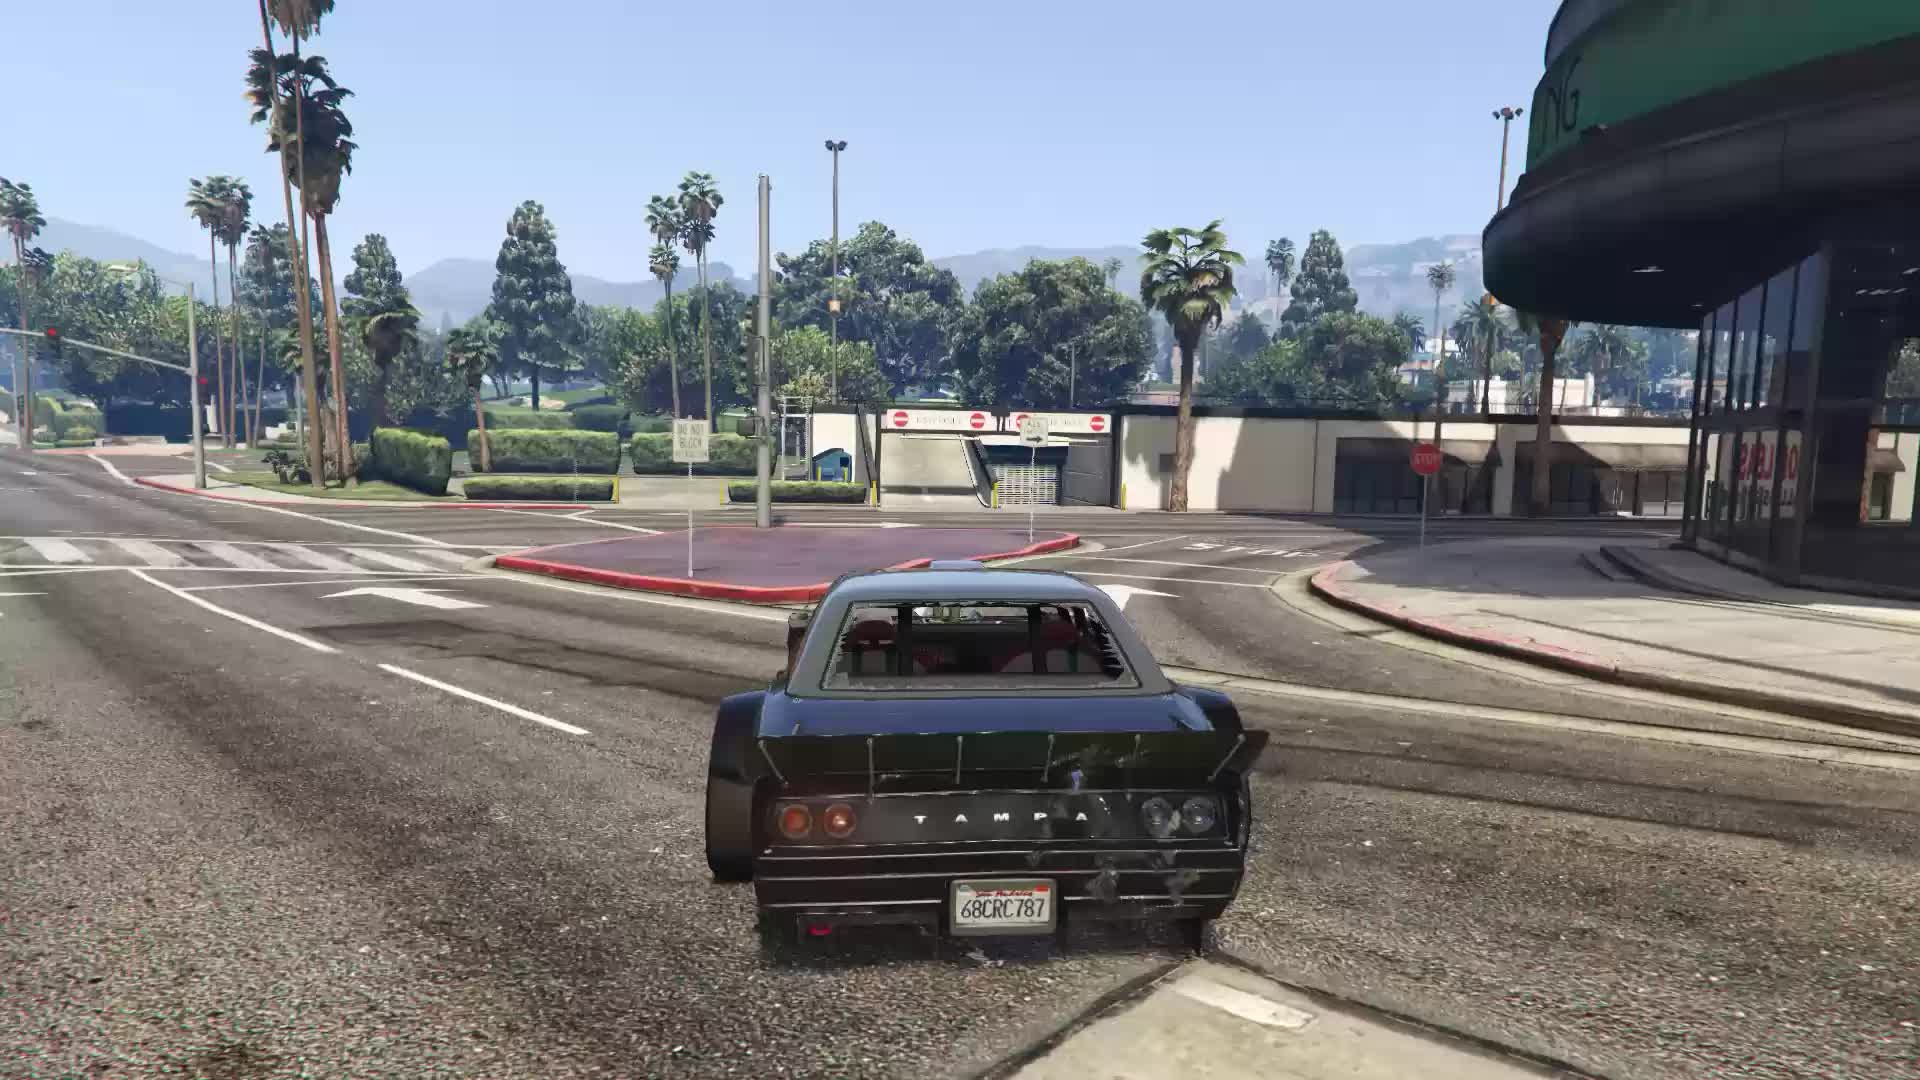 GrandTheftAutoV, Unexpected, gaming GIF - Create, Discover a GIFs